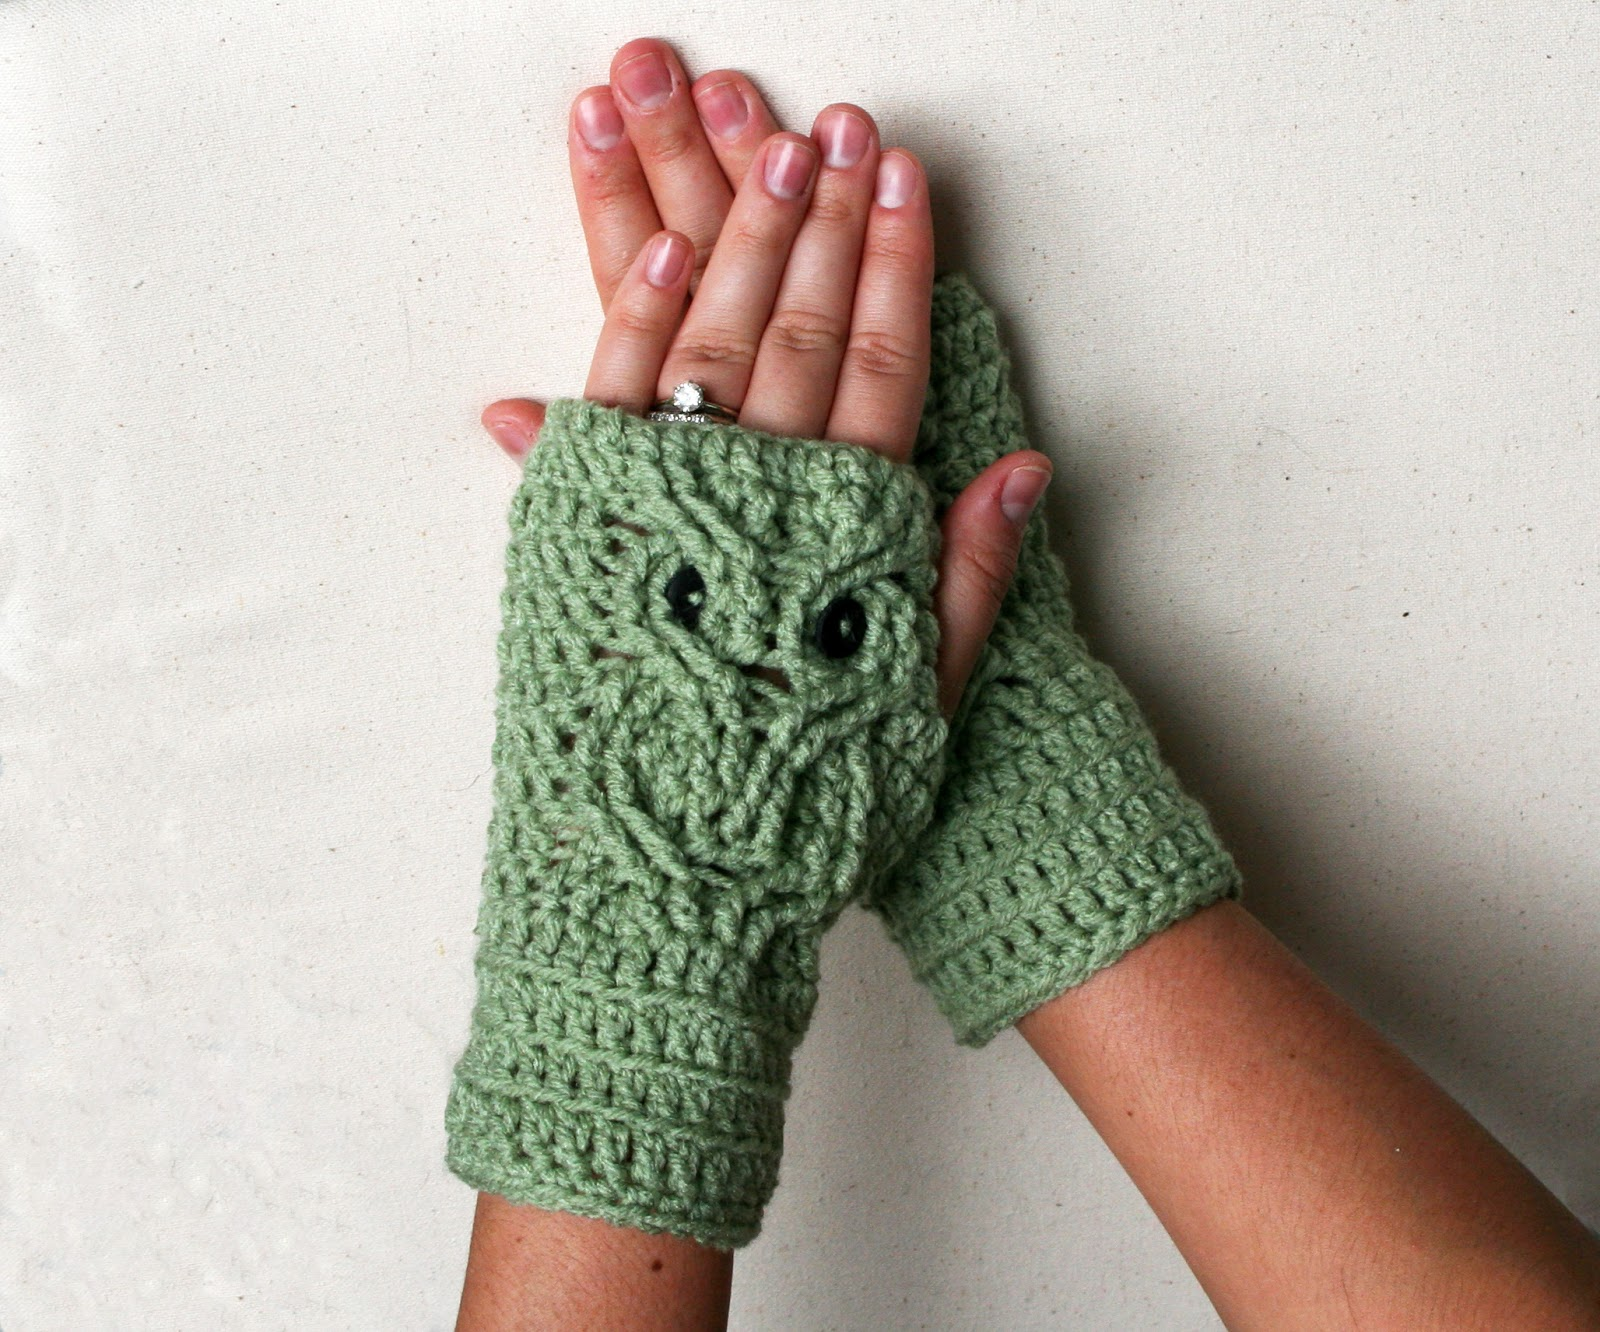 Free Crochet Patterns For Fingerless Gloves And Mitts : Tampa Bay Crochet: Free Crochet Pattern: Owl Fingerless Gloves